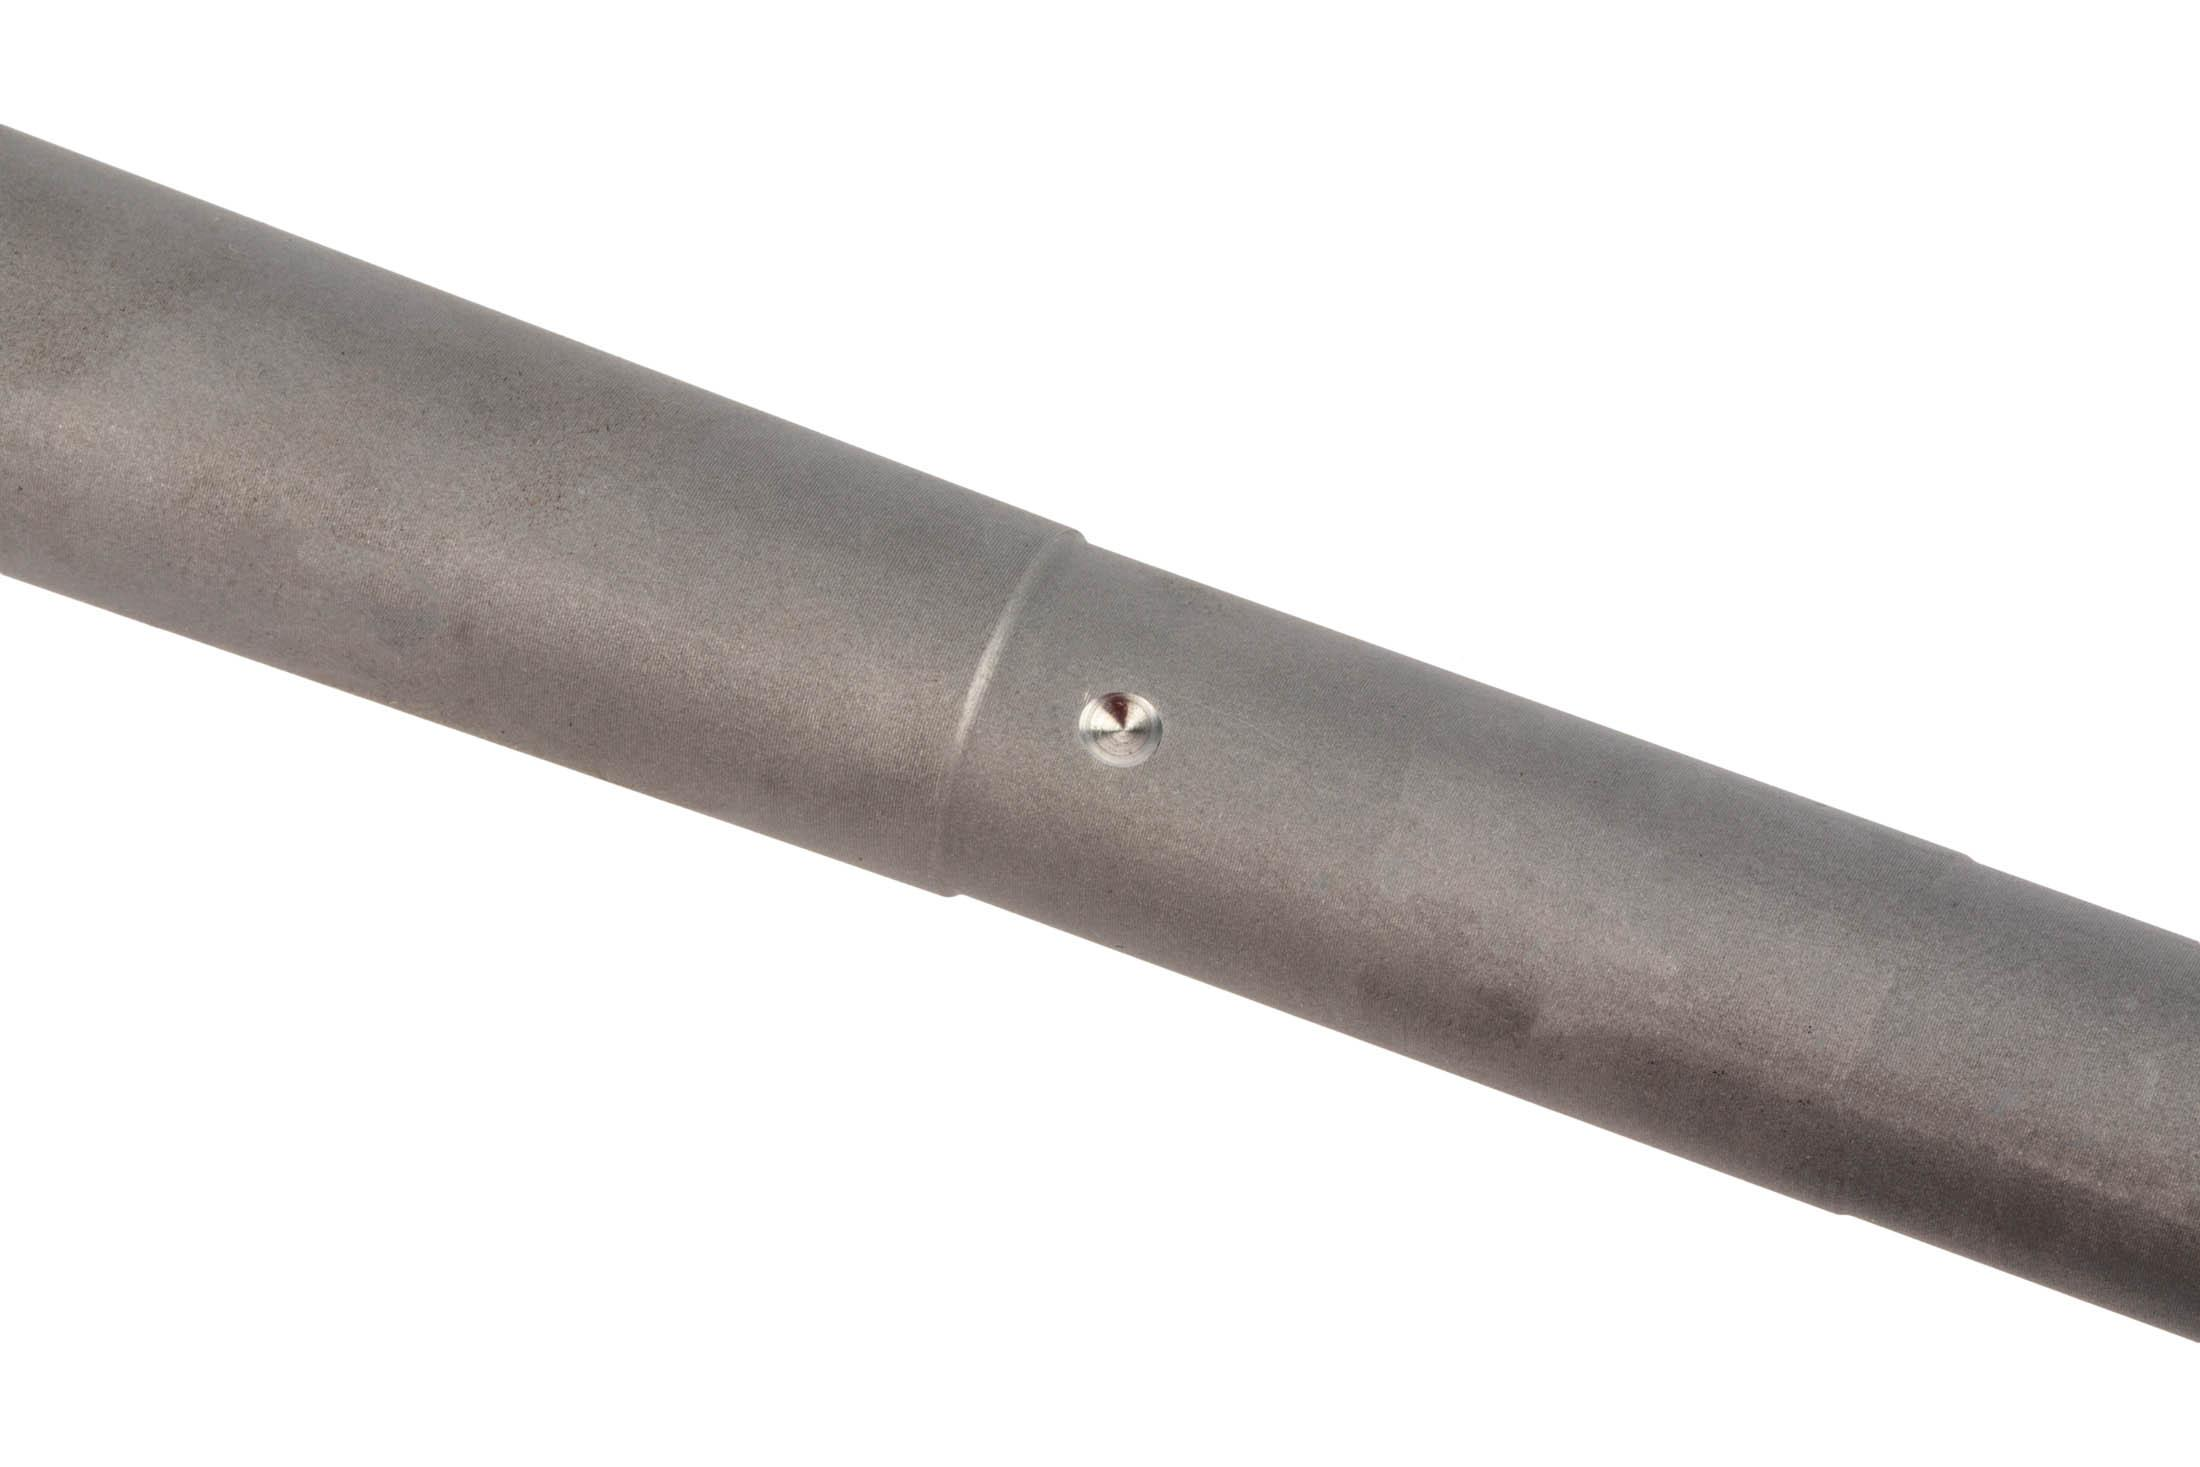 The Sons of Liberty Gun Works AR-308 barrel features a dimple for set screw gas blocks